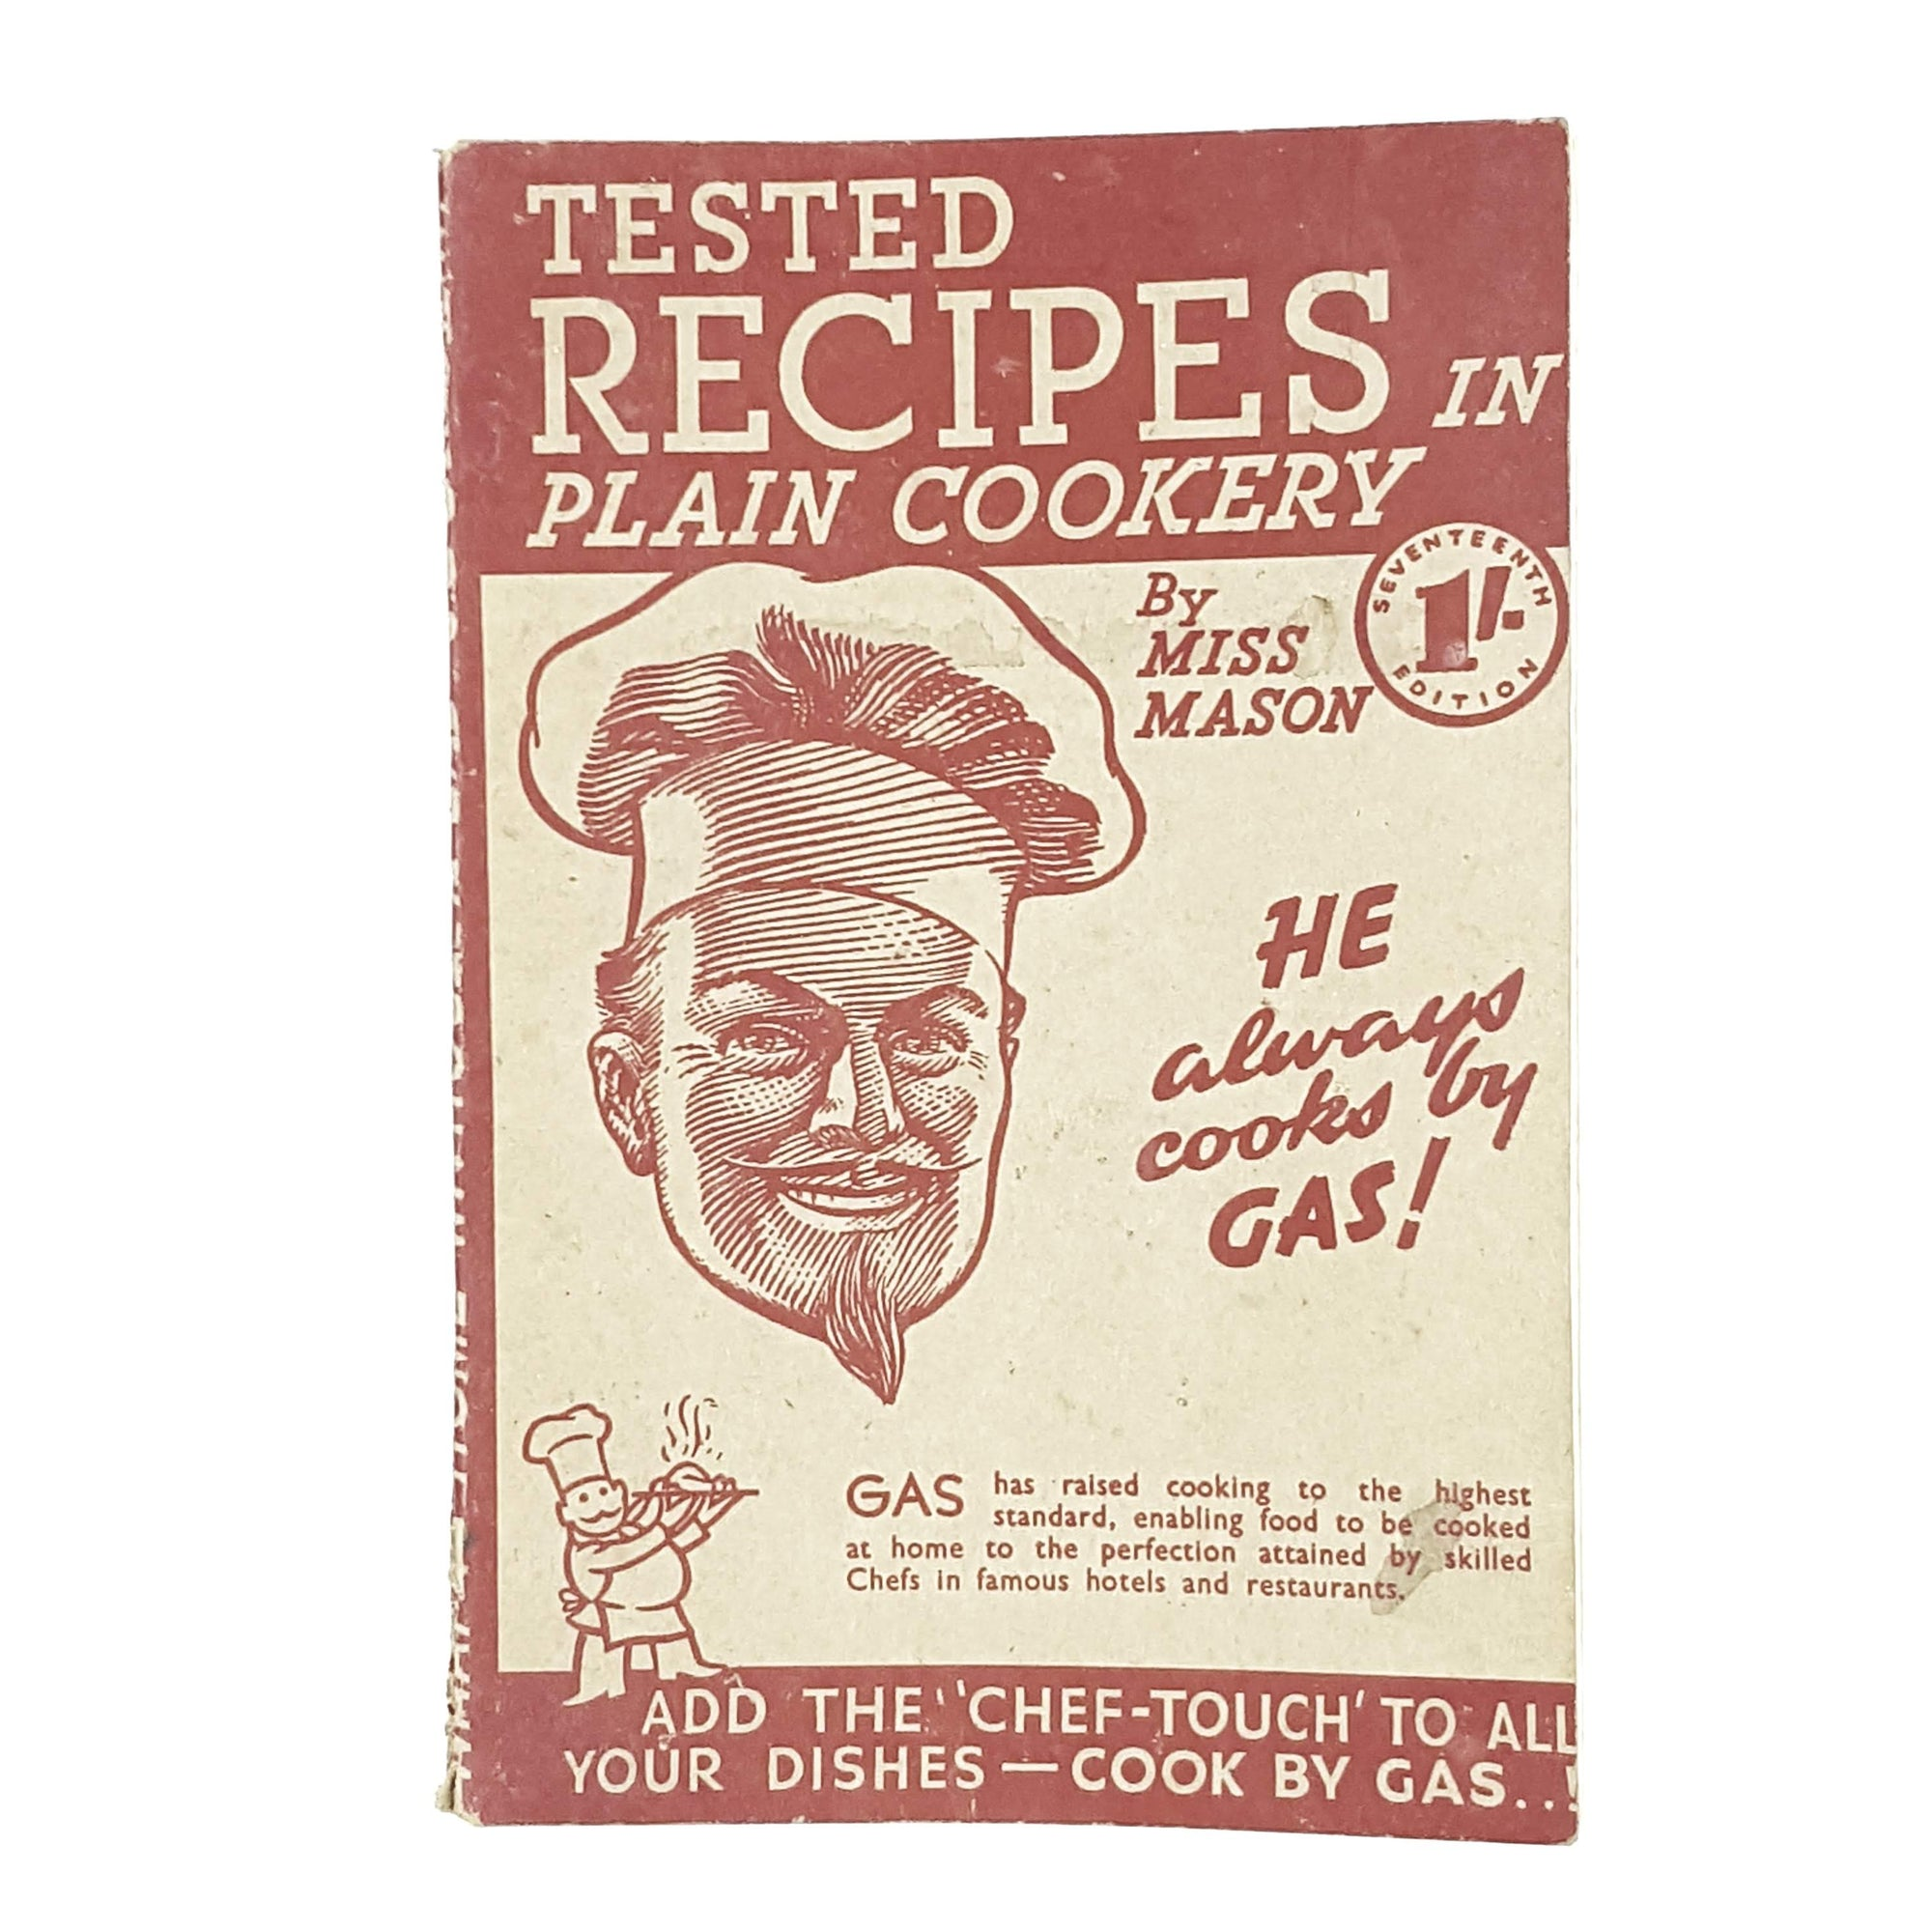 Tested Recipes in Plain Cookery by Miss Mason 1946